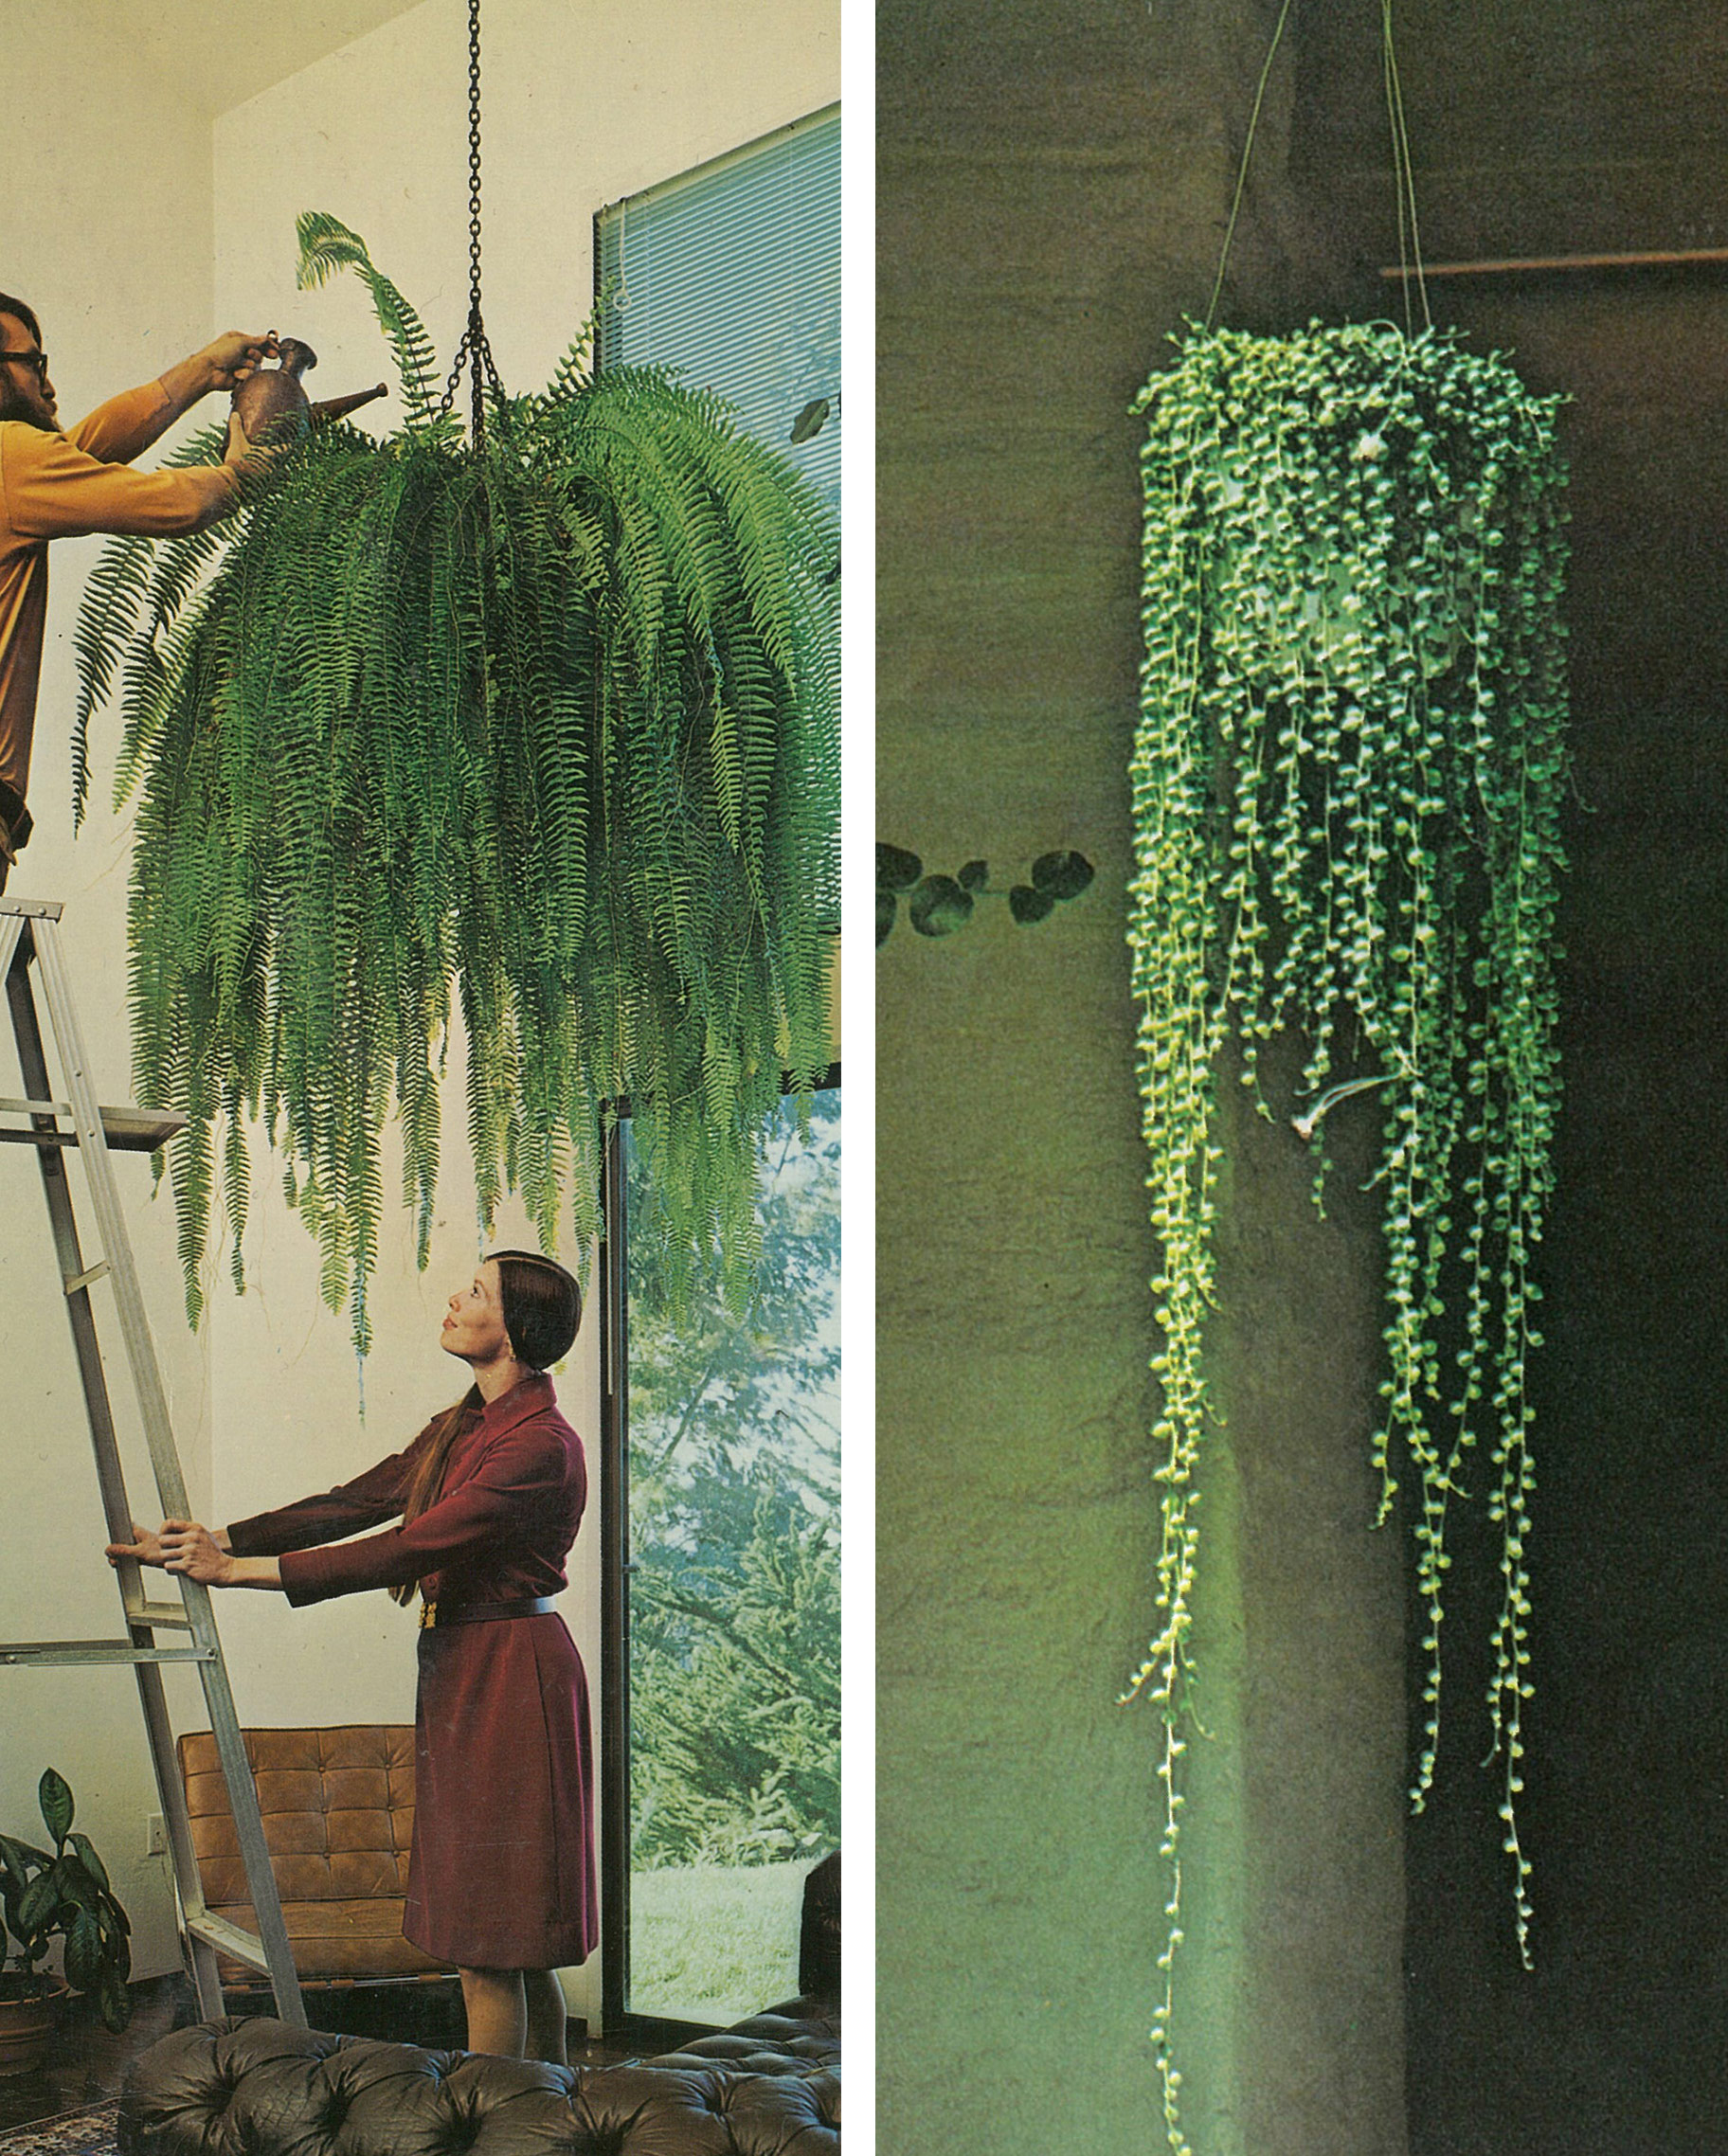 all images from sunset ideas for hanging gardens lane publishing co california 1974